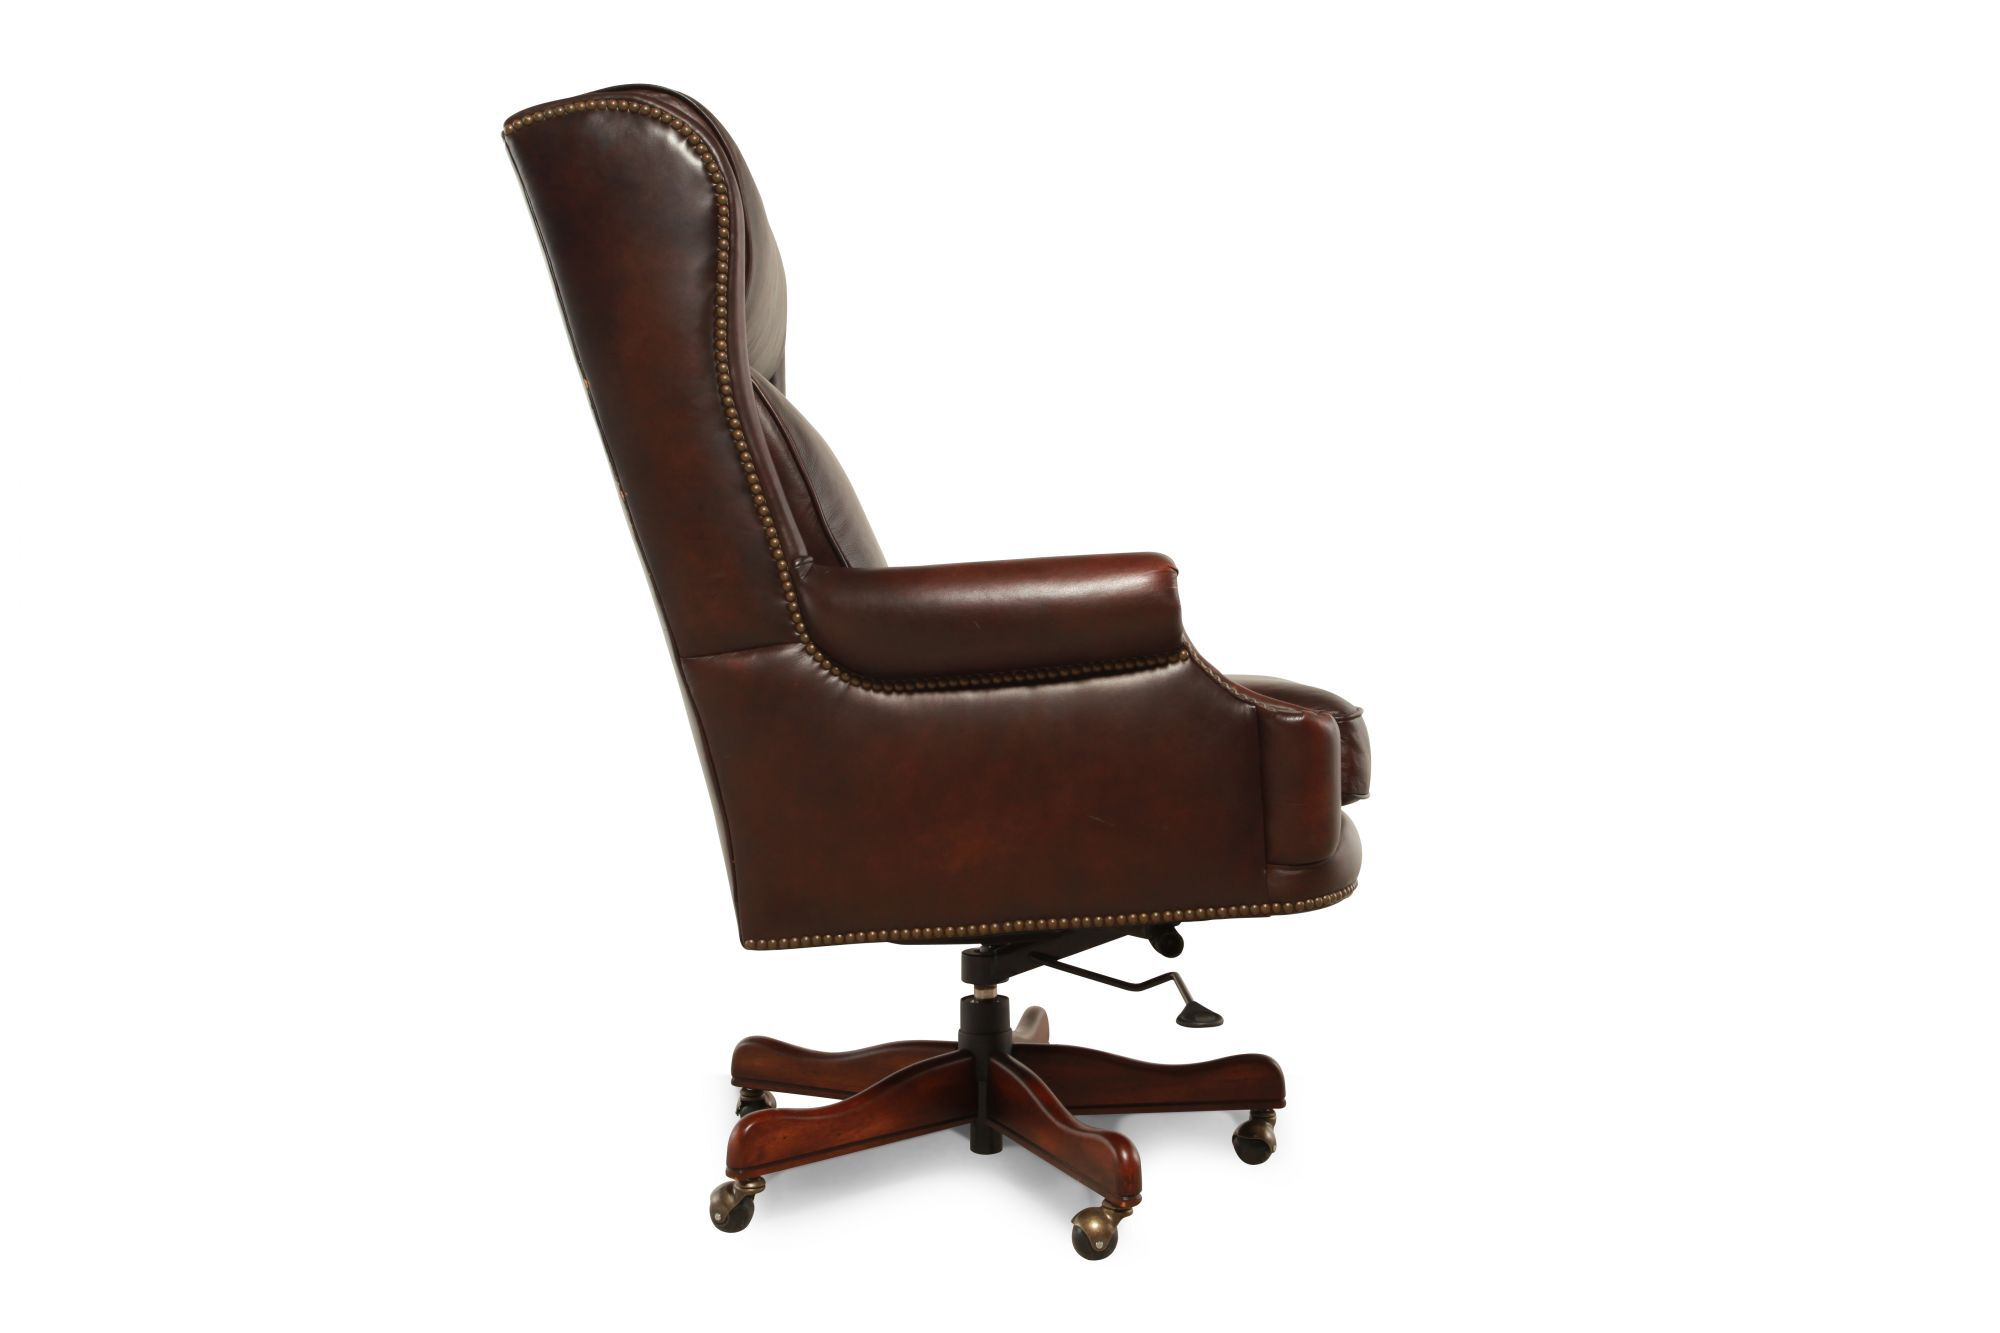 Leather Ergonomic Executive Swivel Tilt Chairu0026nbsp;in Rich Brown